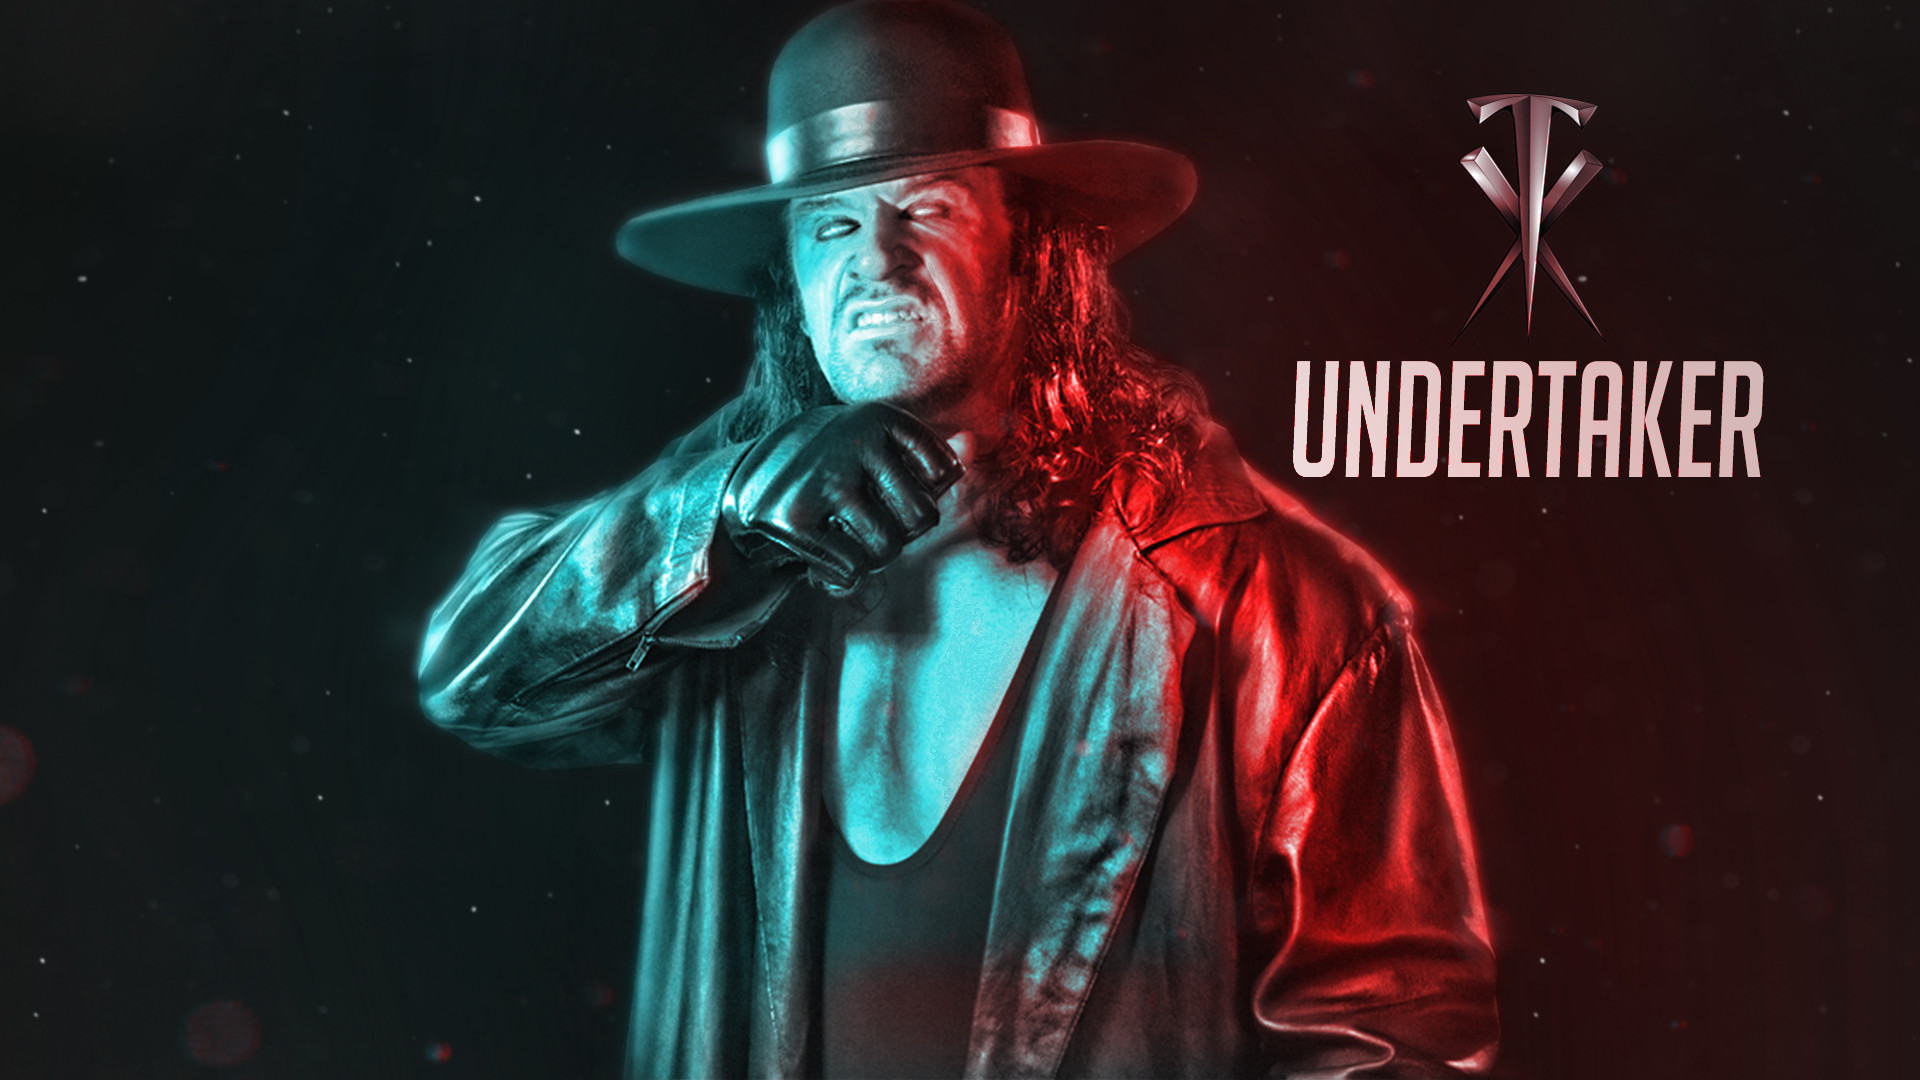 undertaker image hd